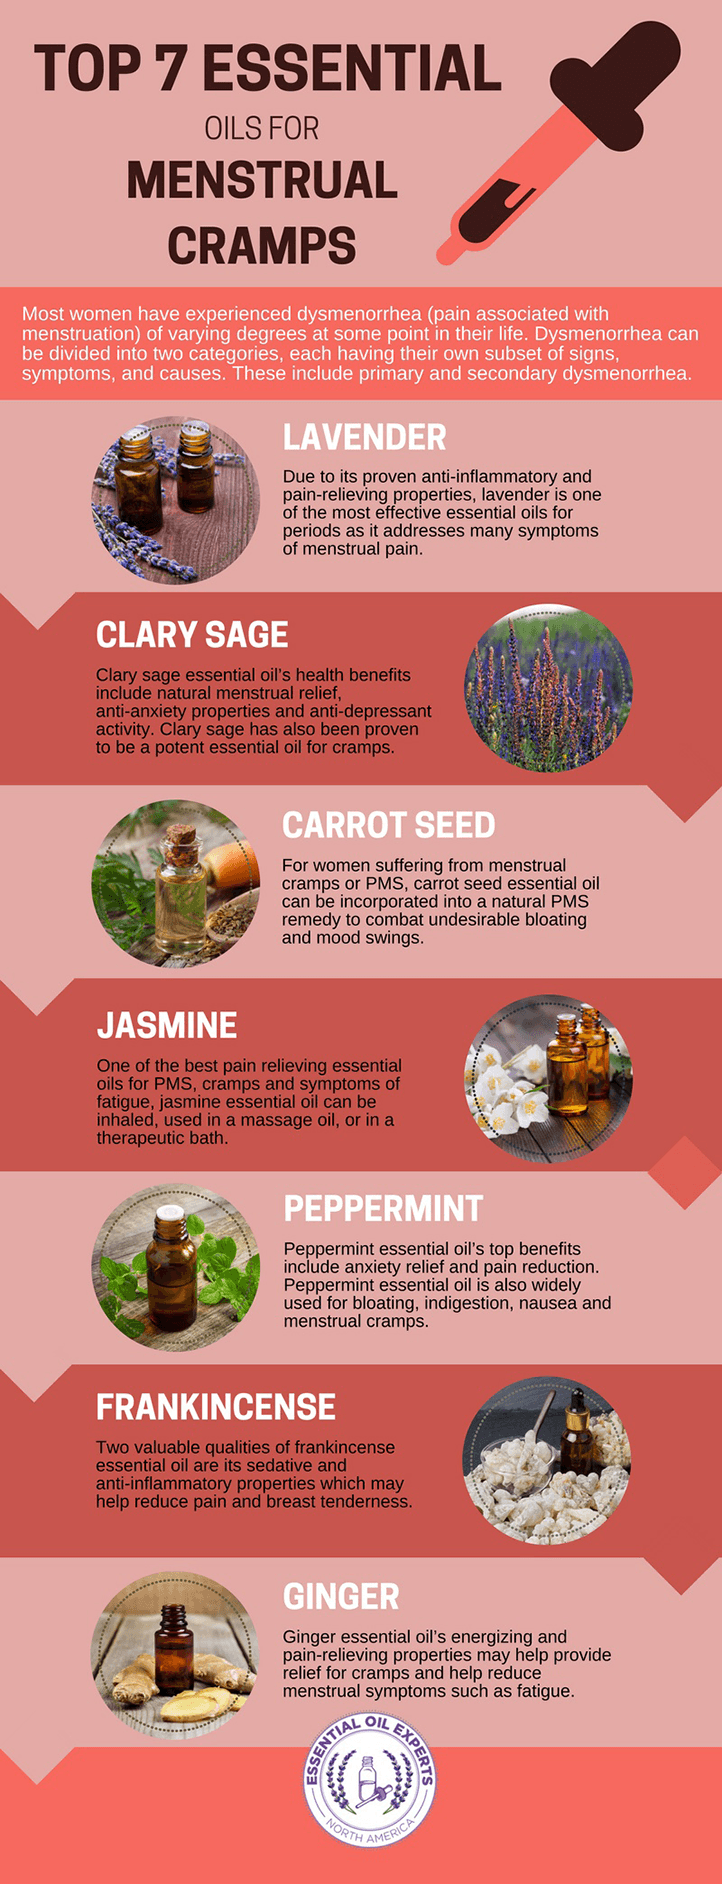 top 7 essential oils for menstrual cramps | home remedies for period